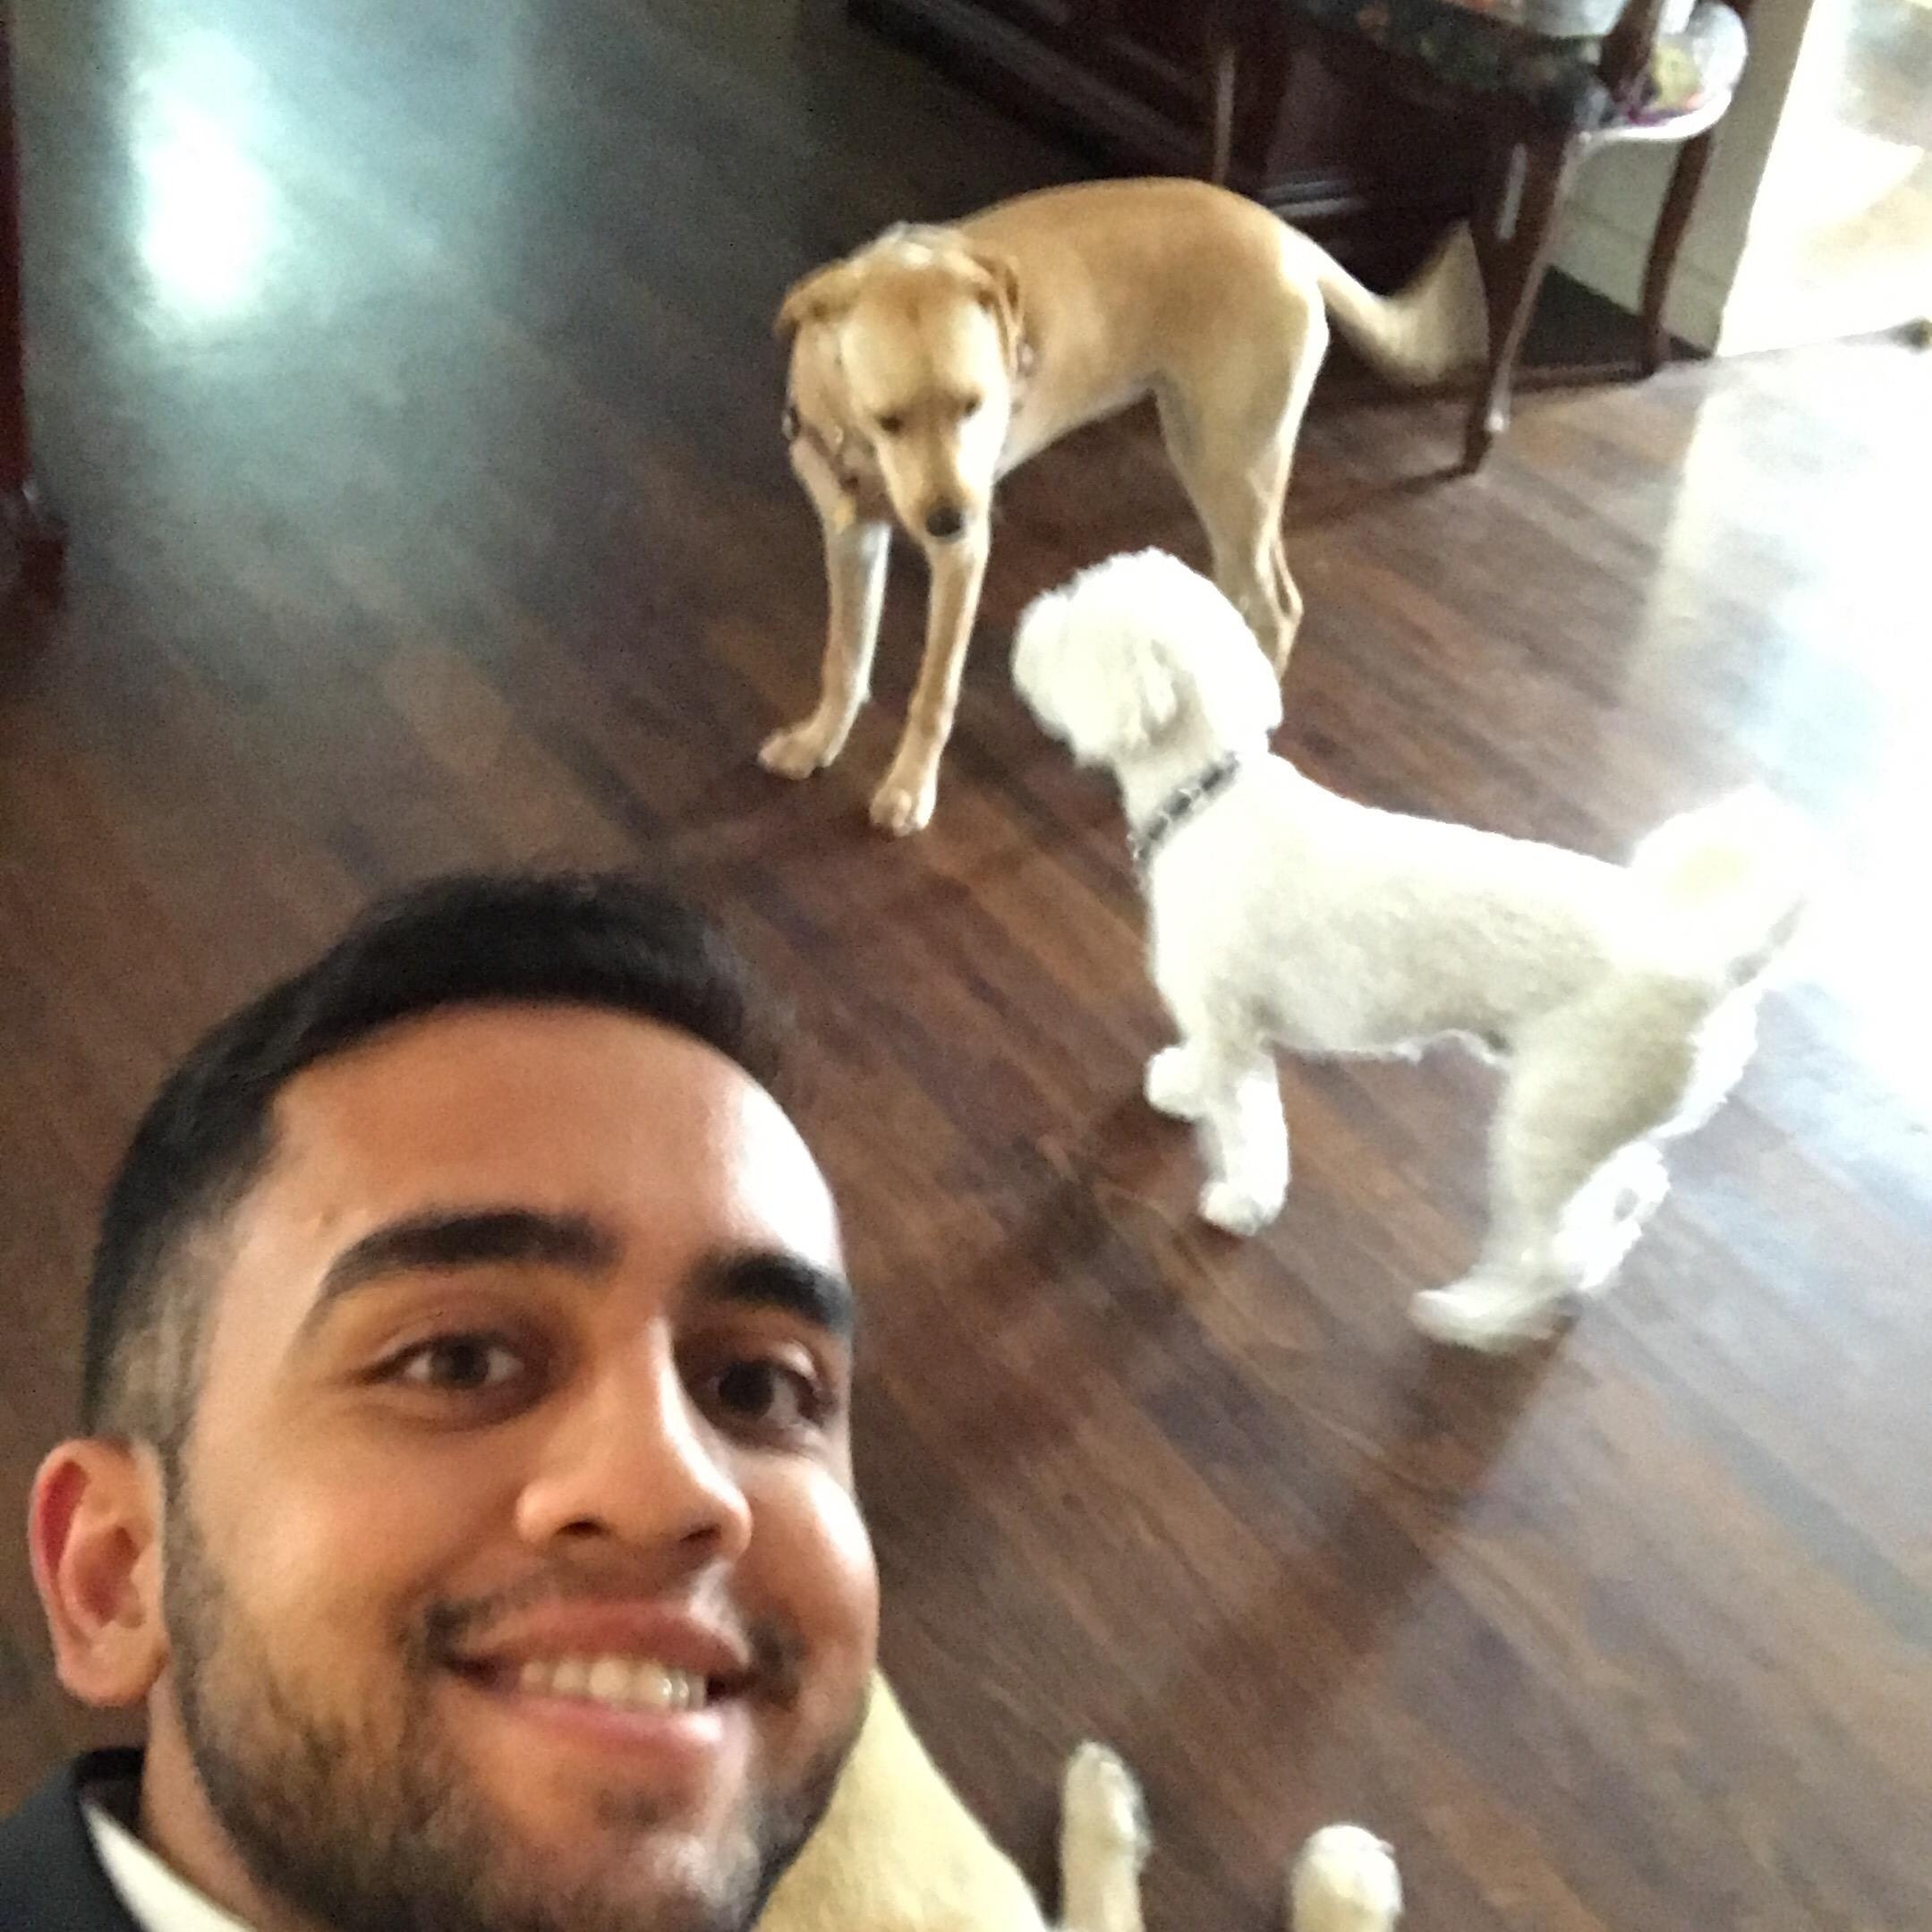 Ankit's dog day care